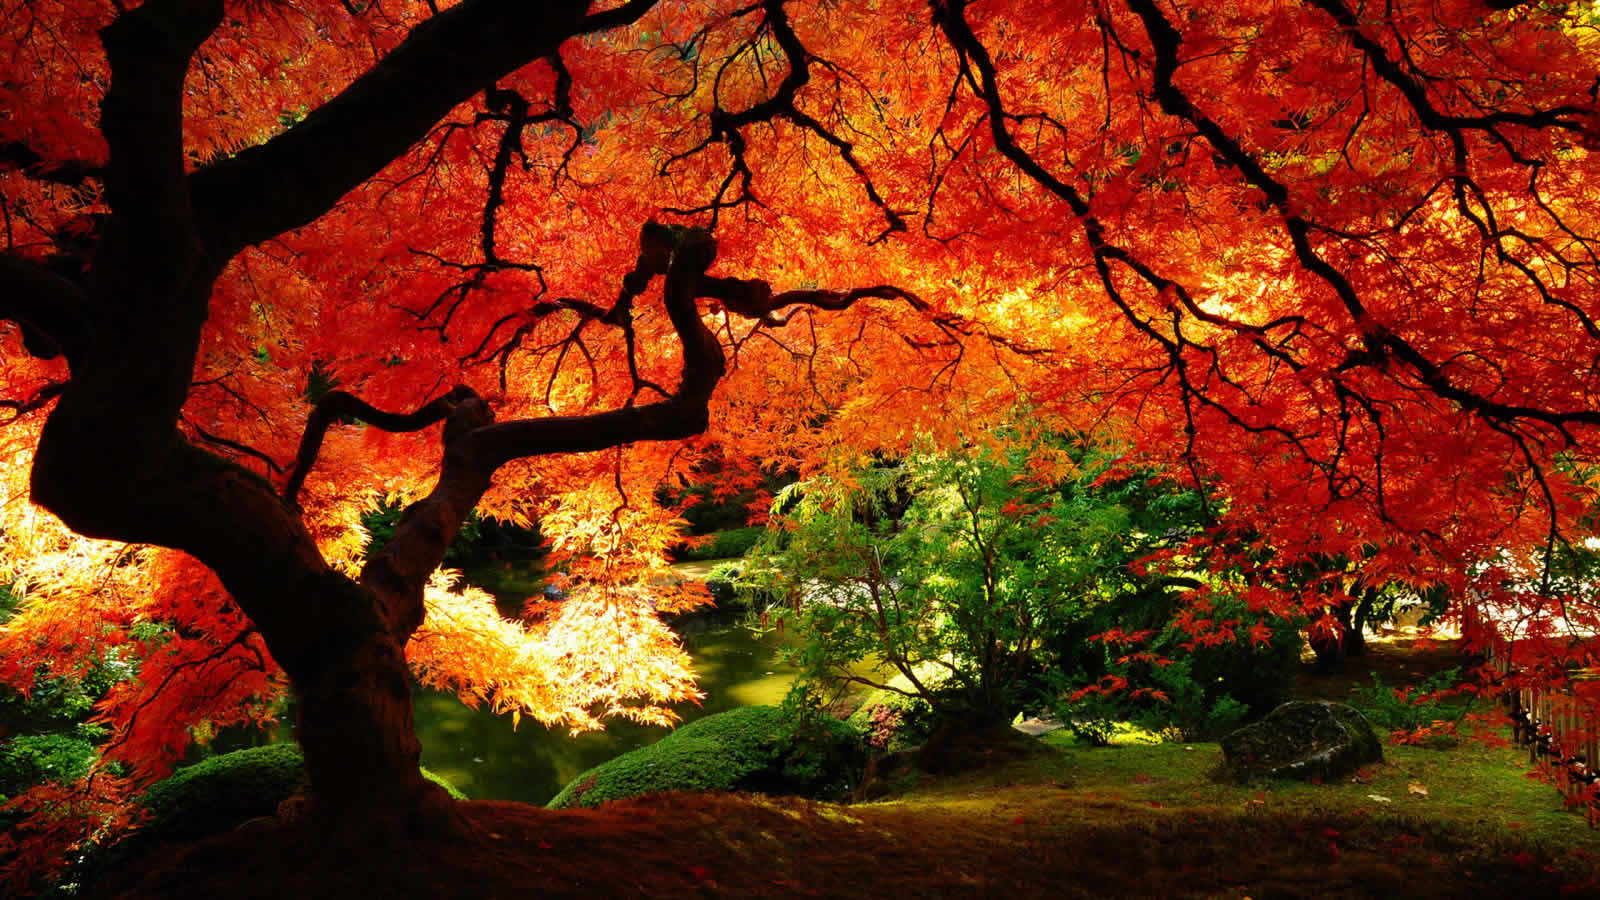 Wallpaper Fall Bright Colored Backgrounds Lovely colors of the fall 1600x900